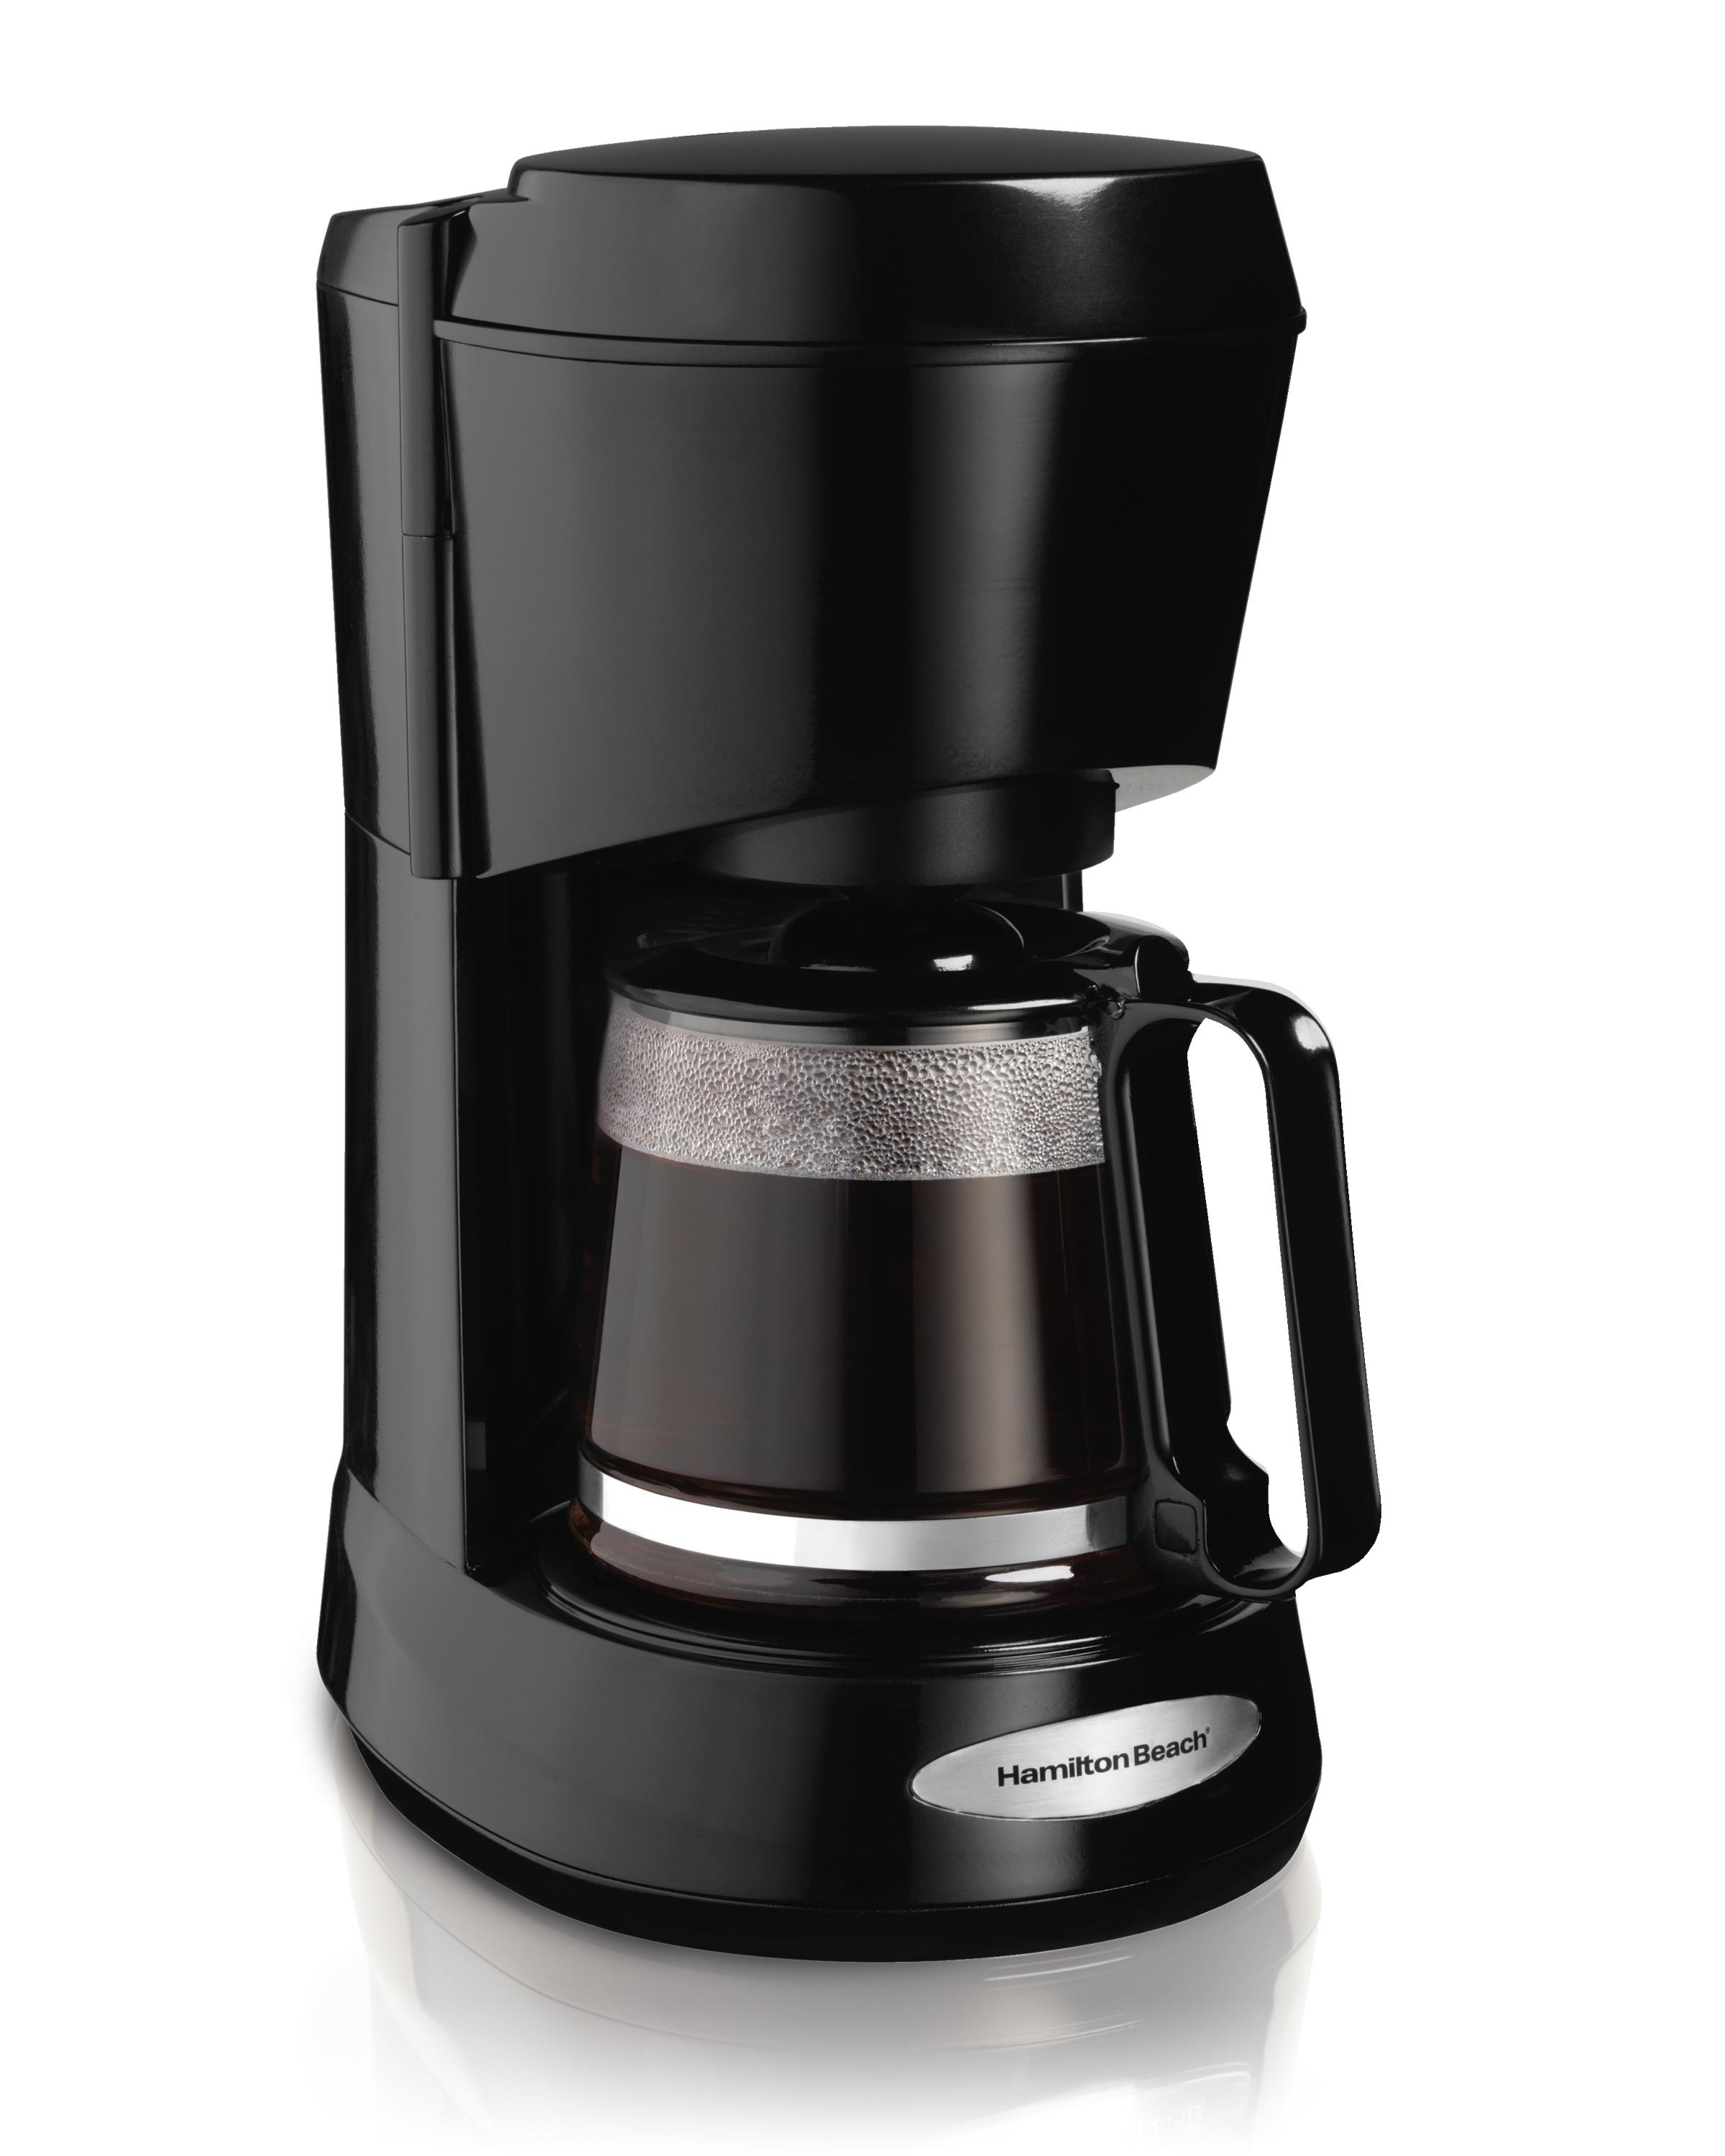 Coffee Maker K Cup And Pot Amazoncom Hamilton Beach Coffee Maker With Glass Carafe 5 Cup